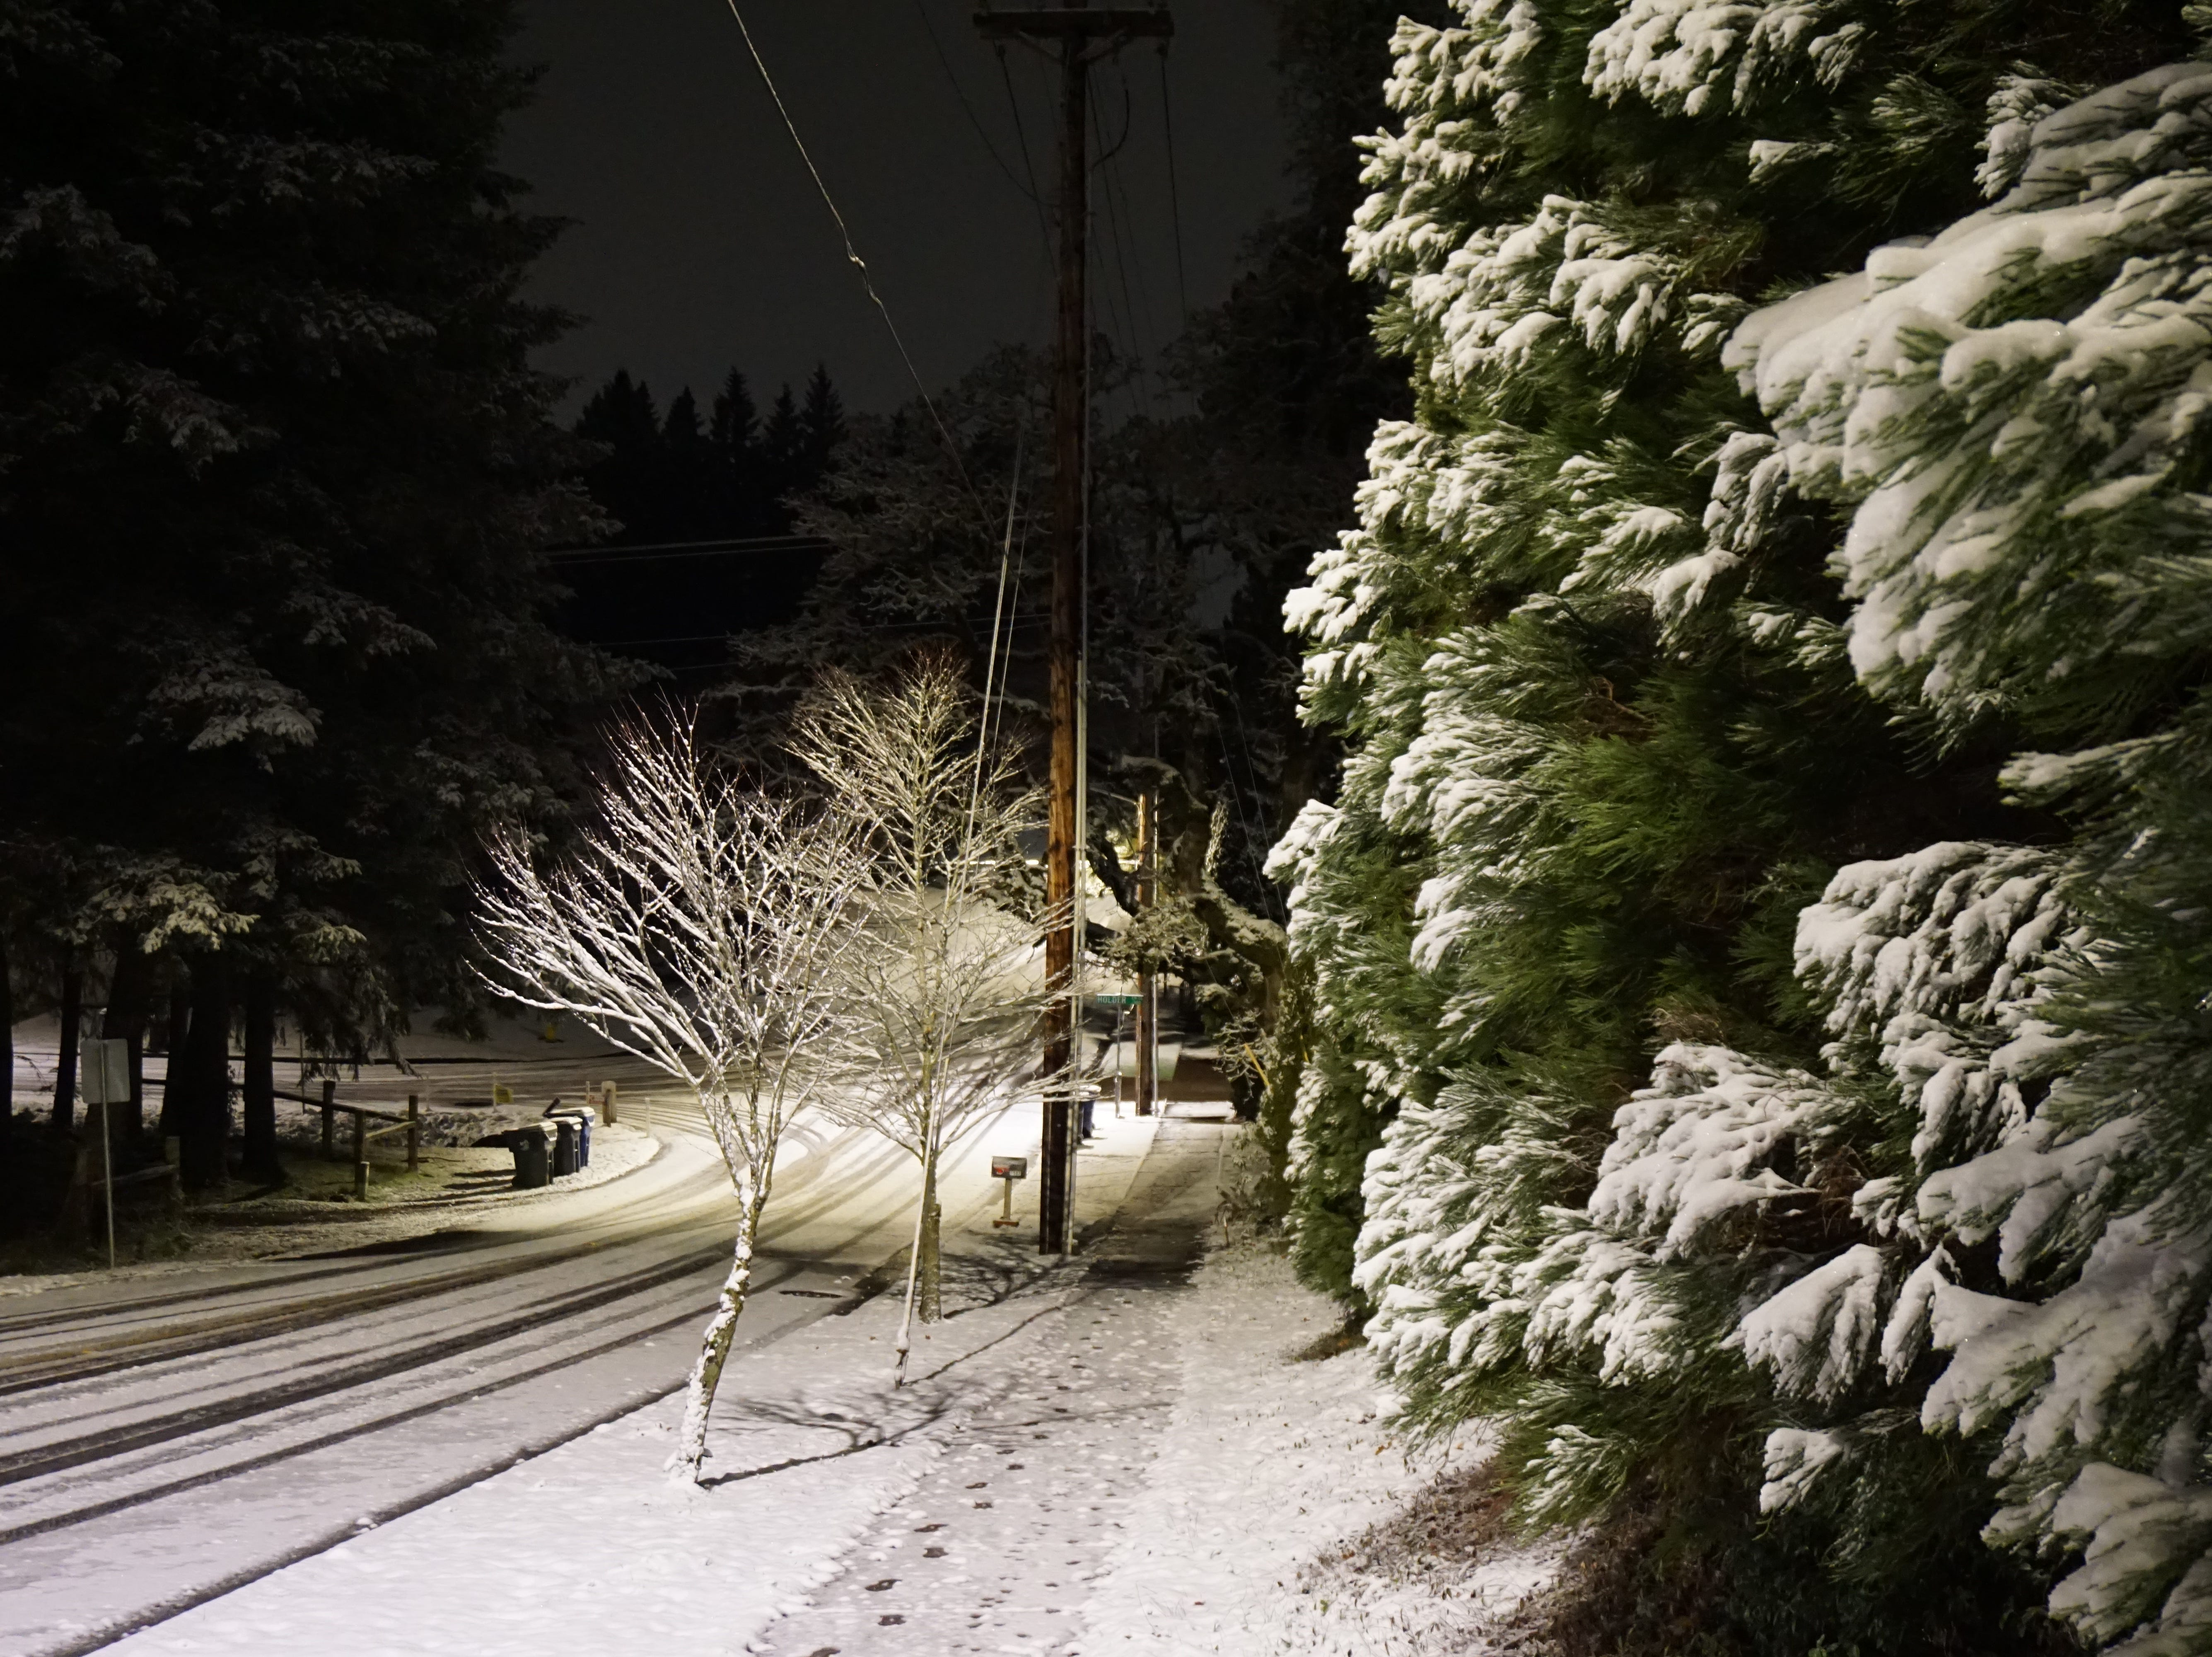 Snow covers a street in South Salem early Tuesday, February 5, 2019.